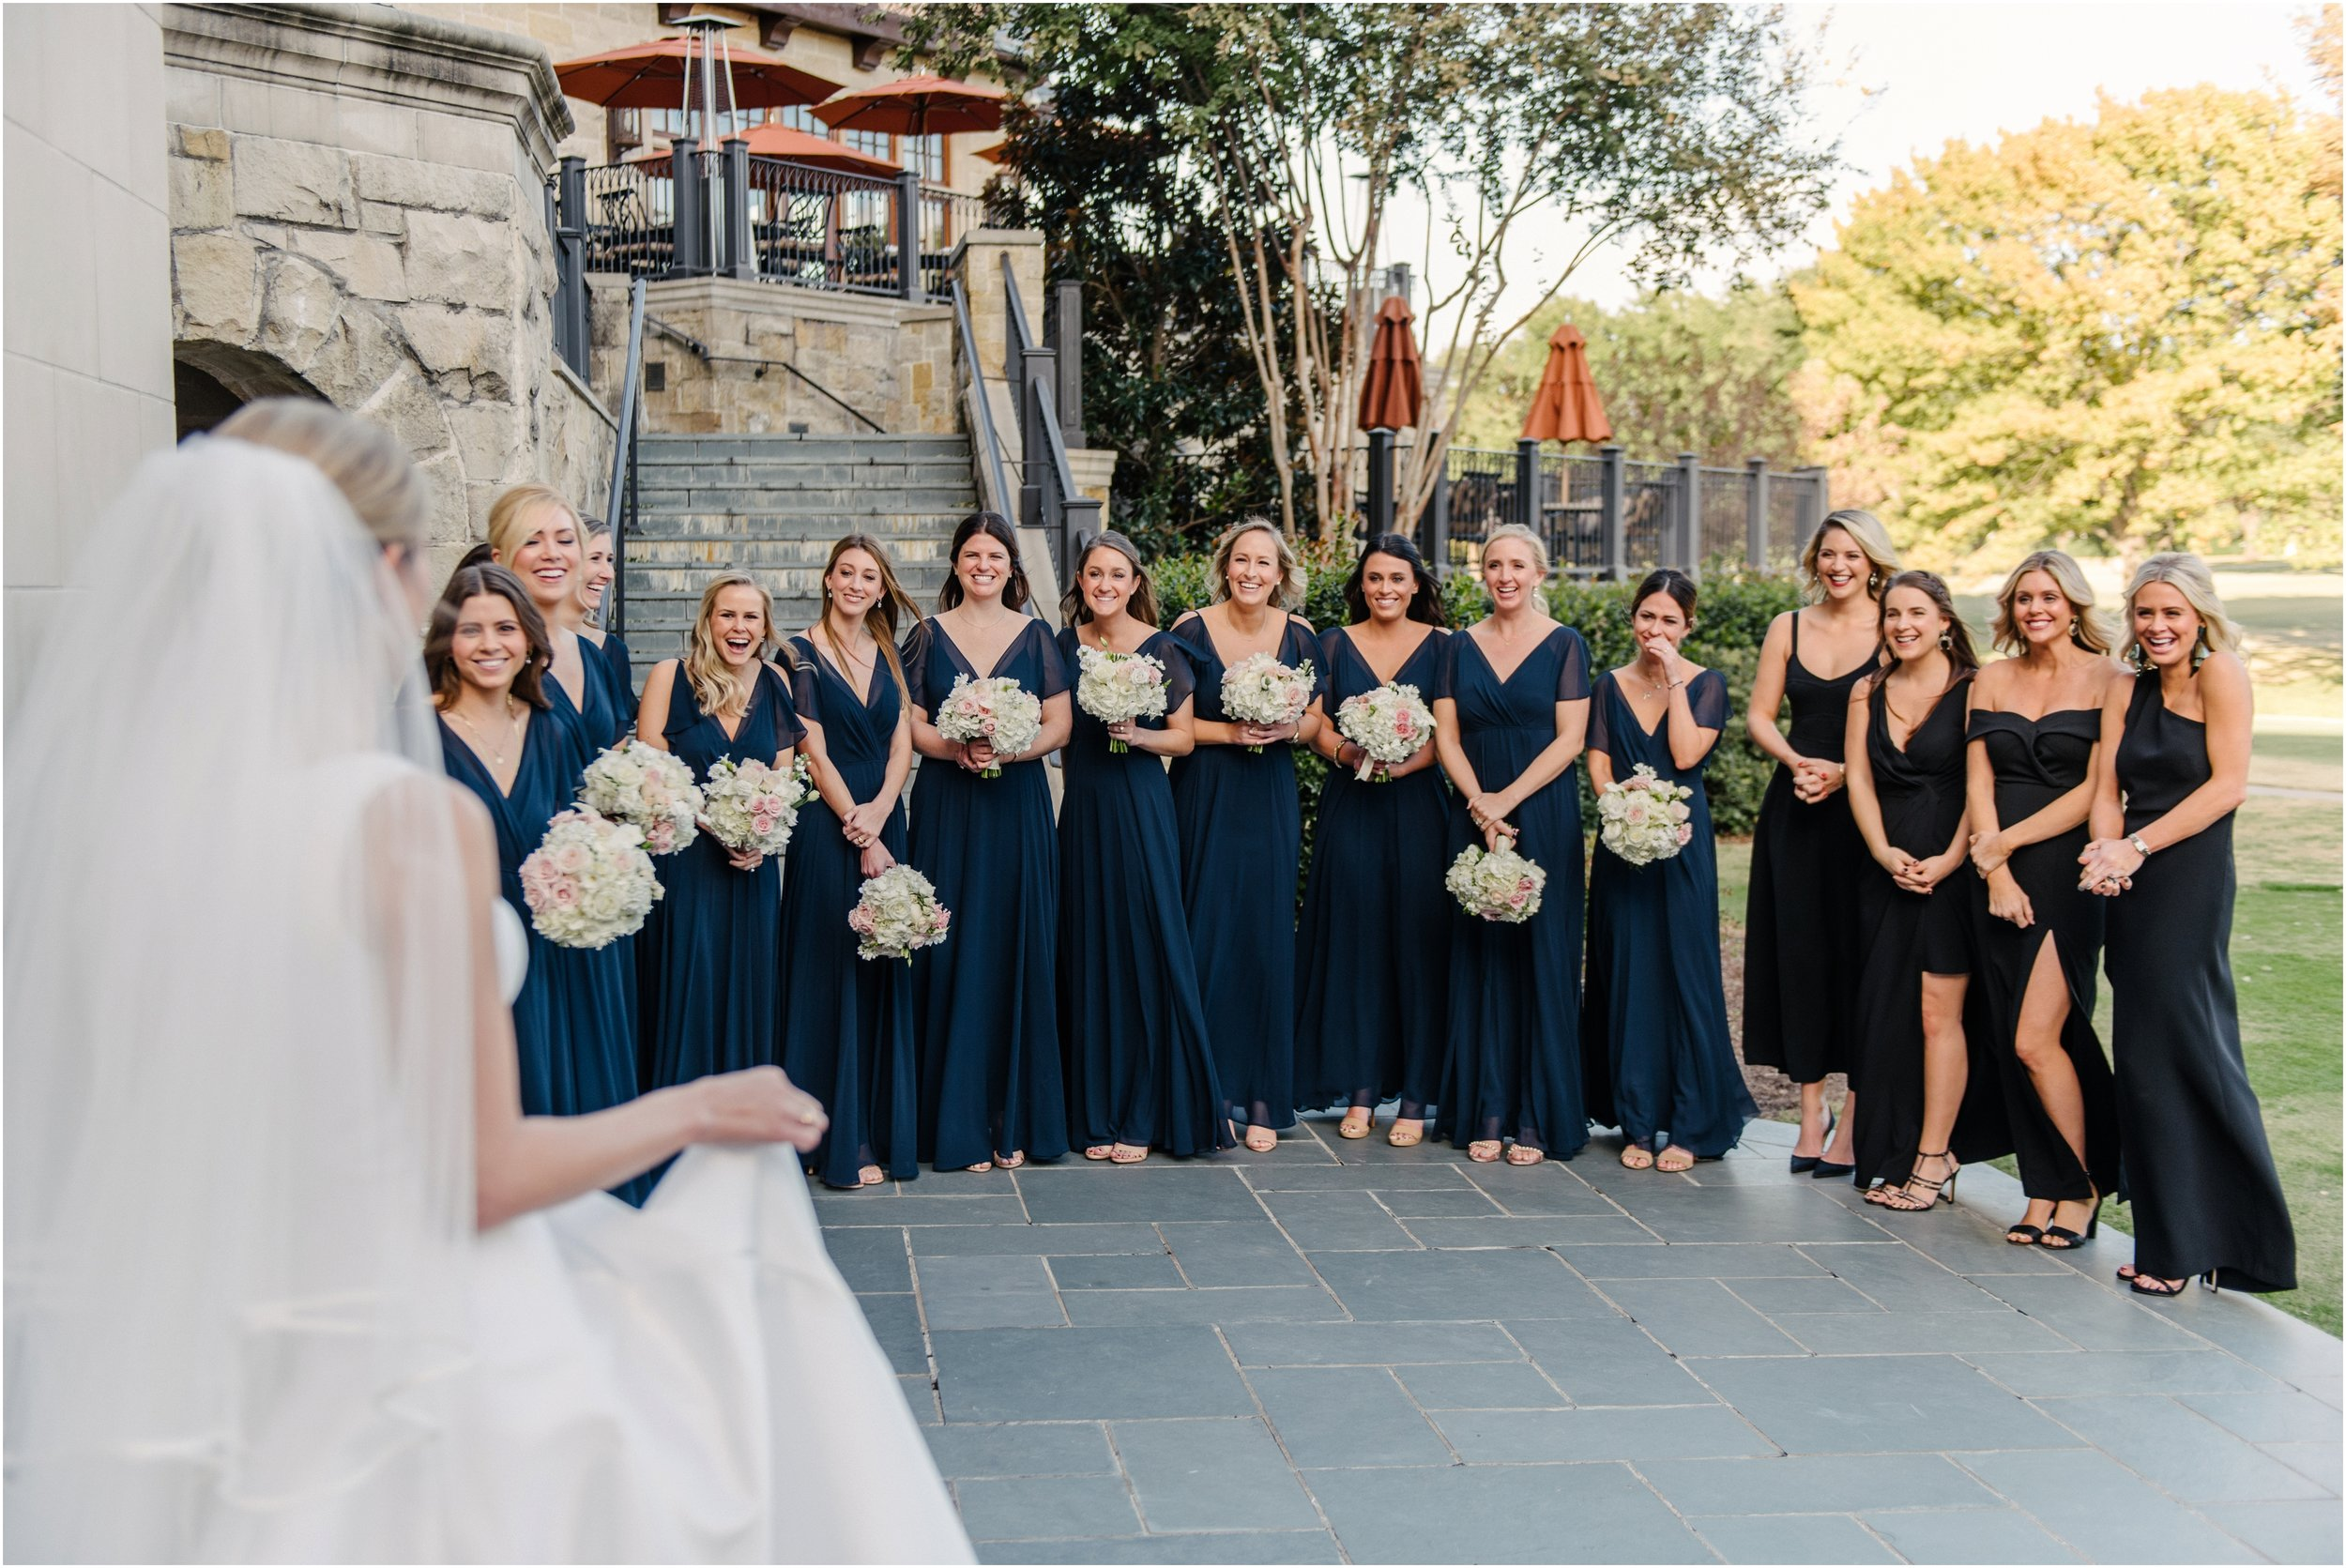 dallasweddingphotographer_DallasCountryClub_Hannah+Matthew_0011.jpg